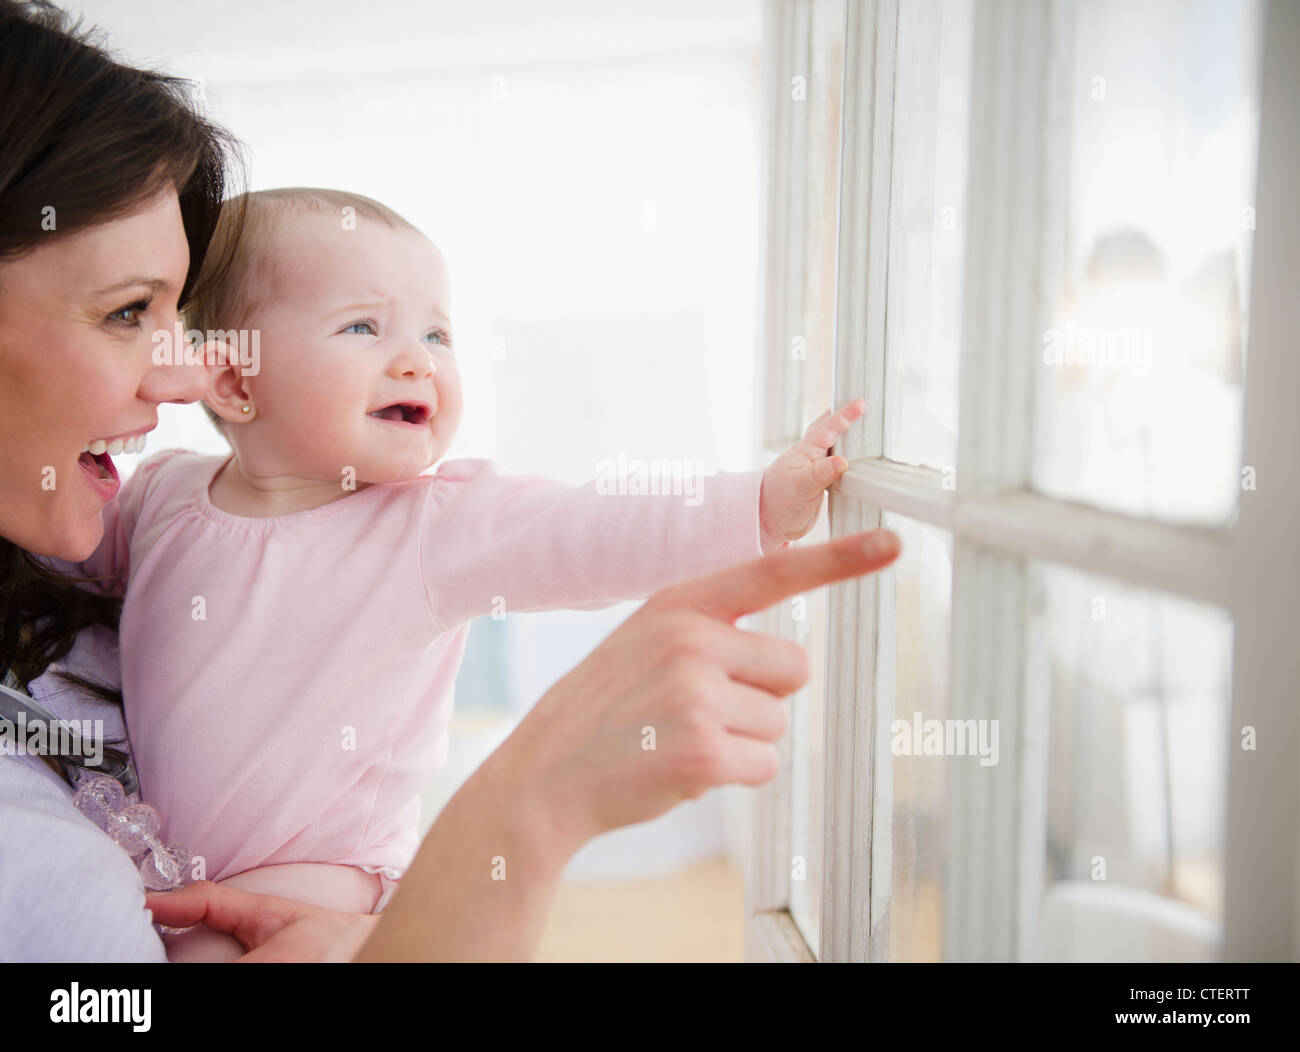 USA, New Jersey, Jersey City, Mother with baby daughter (6-11 months) looking through window - Stock Image